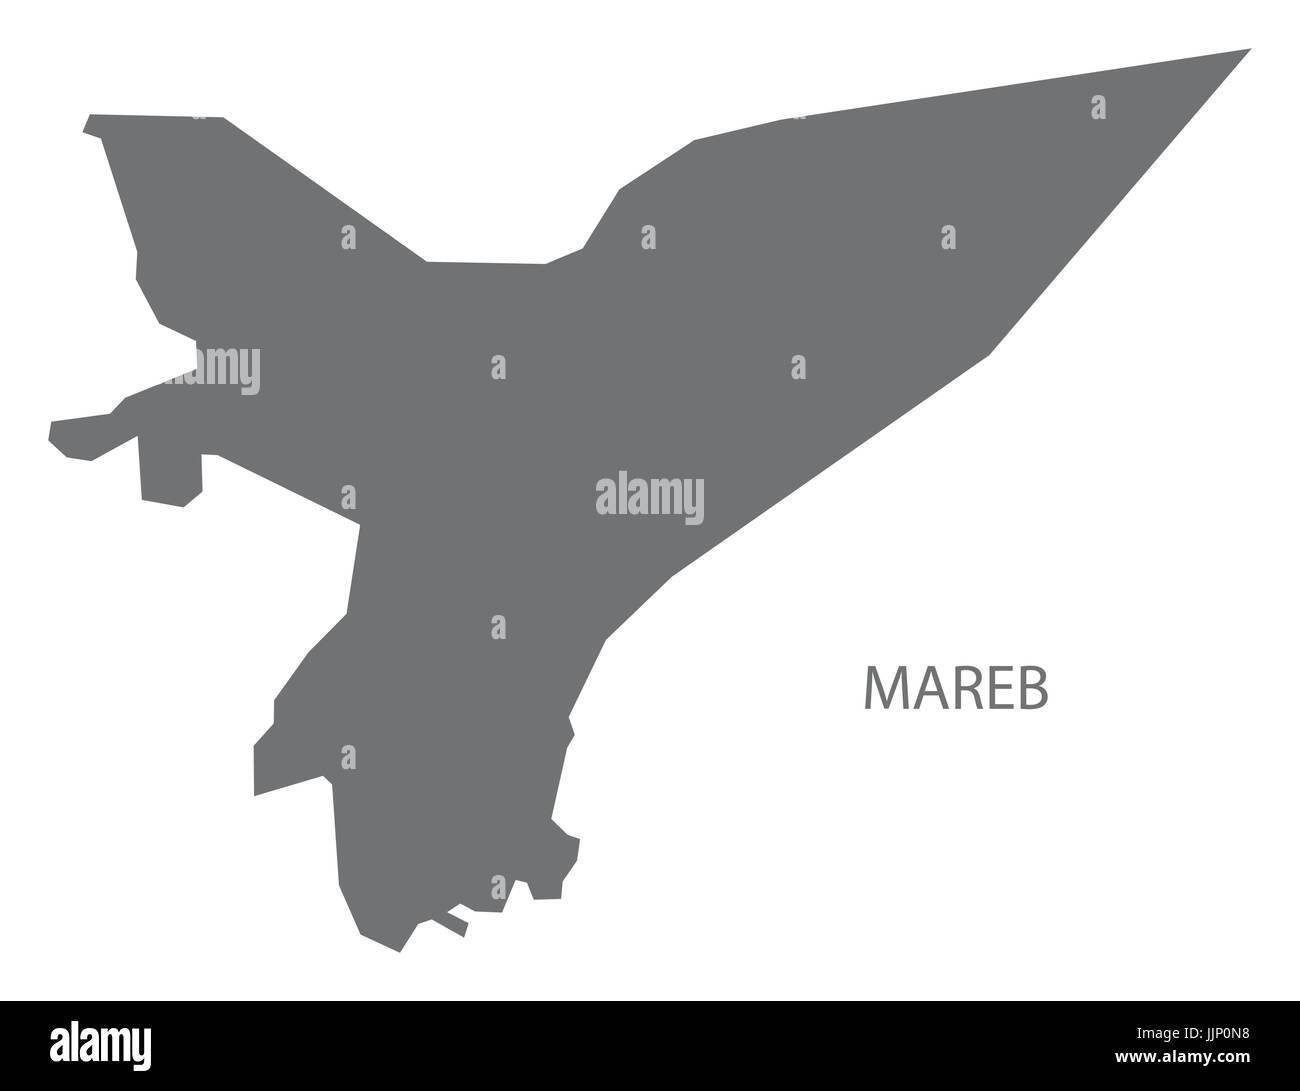 Mareb Yemen governorate map grey illustration silhouette shape - Stock Image